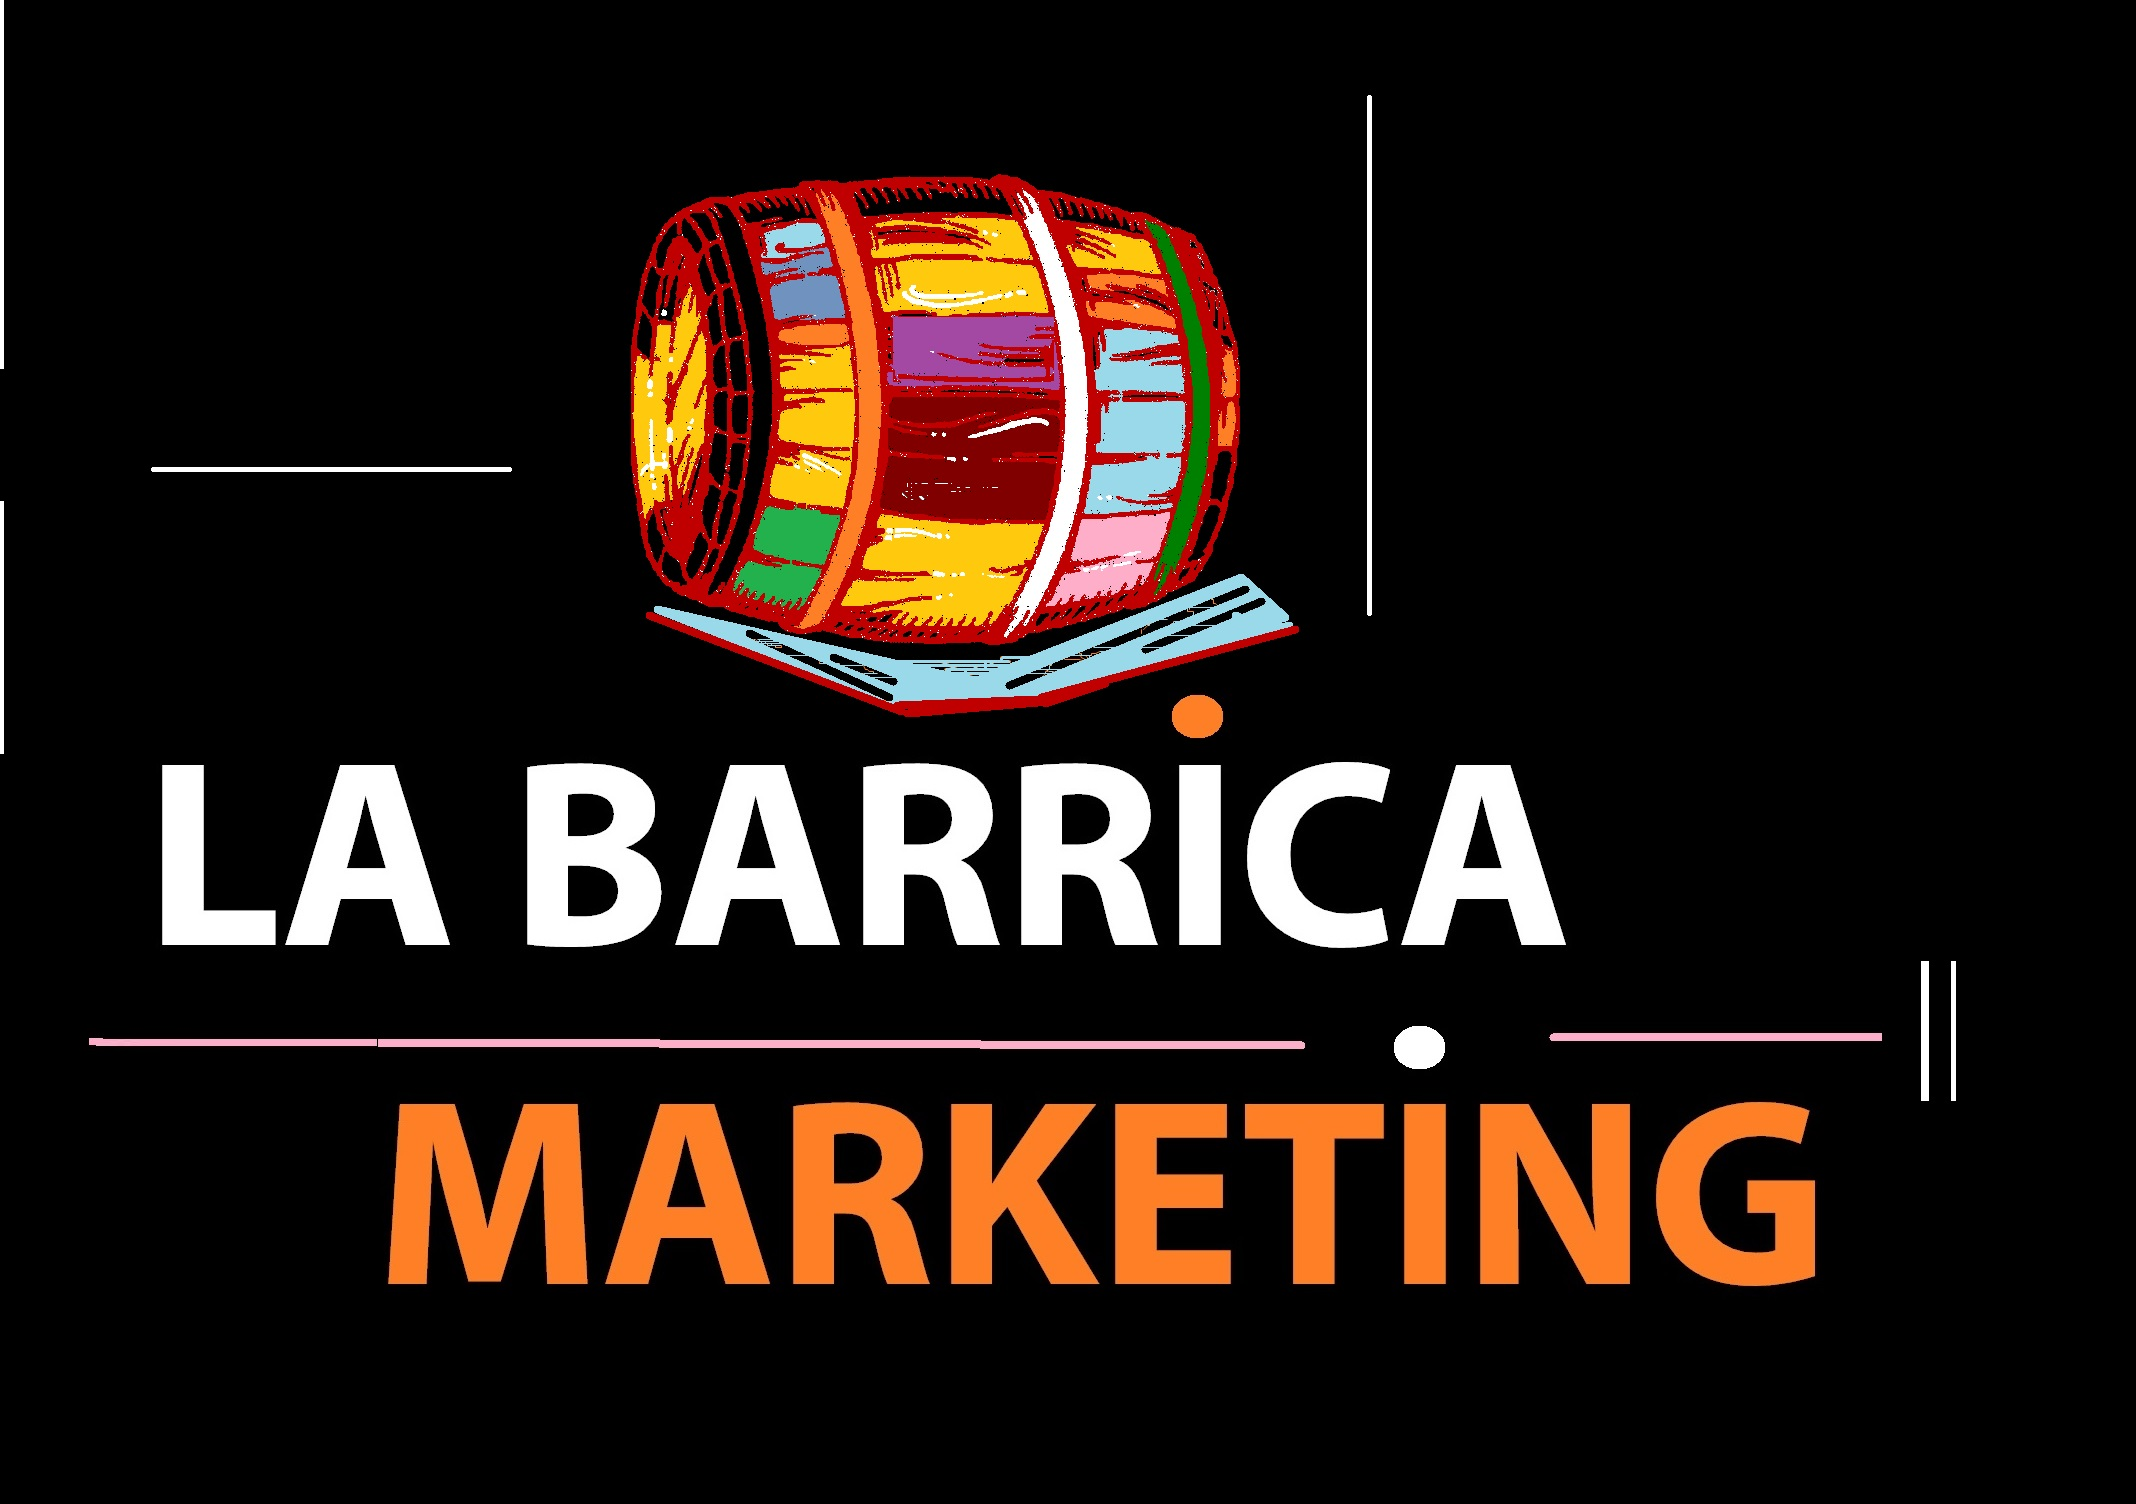 LA BARRICA MARKETING - ESTRATEGIA PARA PYMES